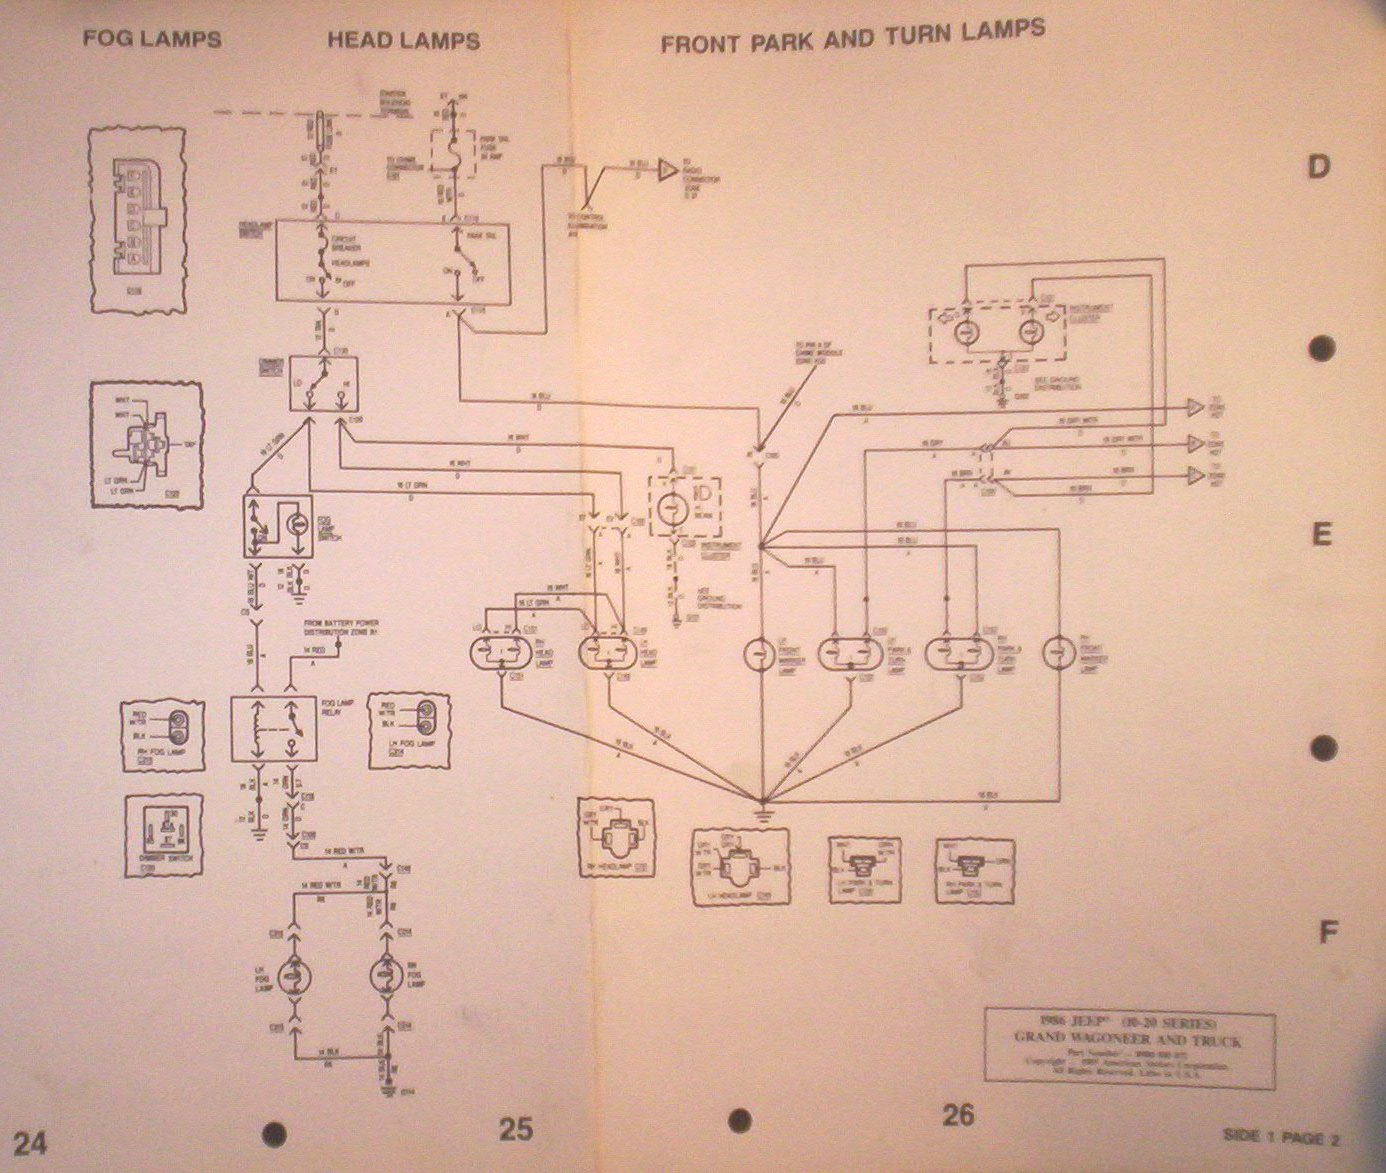 [SCHEMATICS_4FR]  Fog Light Switch and Wiring - Full Size Jeep Network | Illuminated Switch Wiring Diagram Fog Light |  | FSJ Network